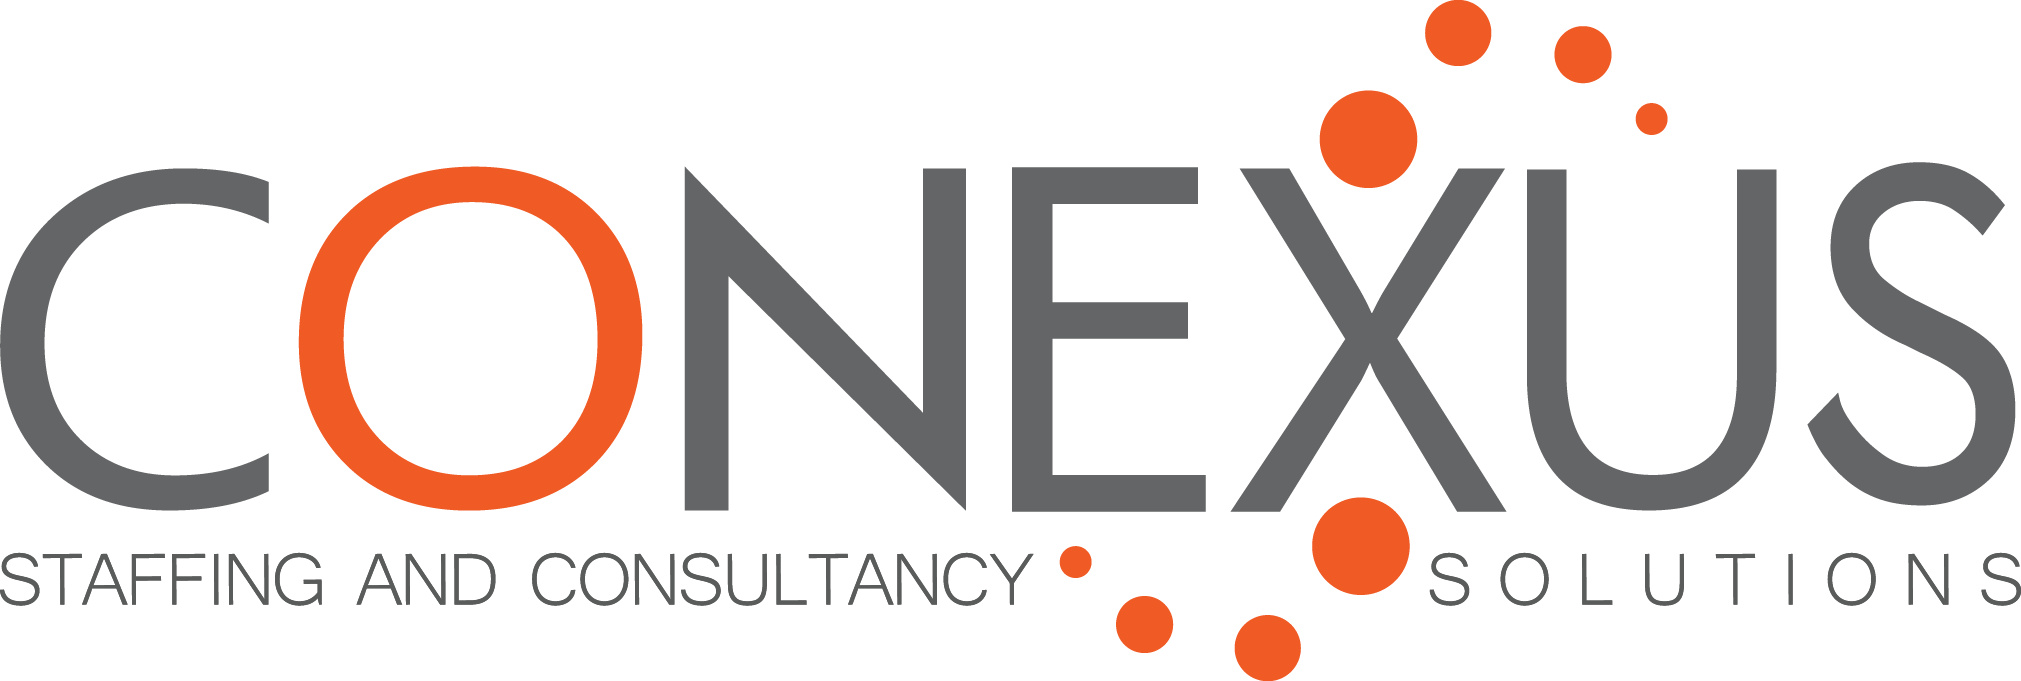 Conexus Staffing and Consultancy Solutions, Inc.